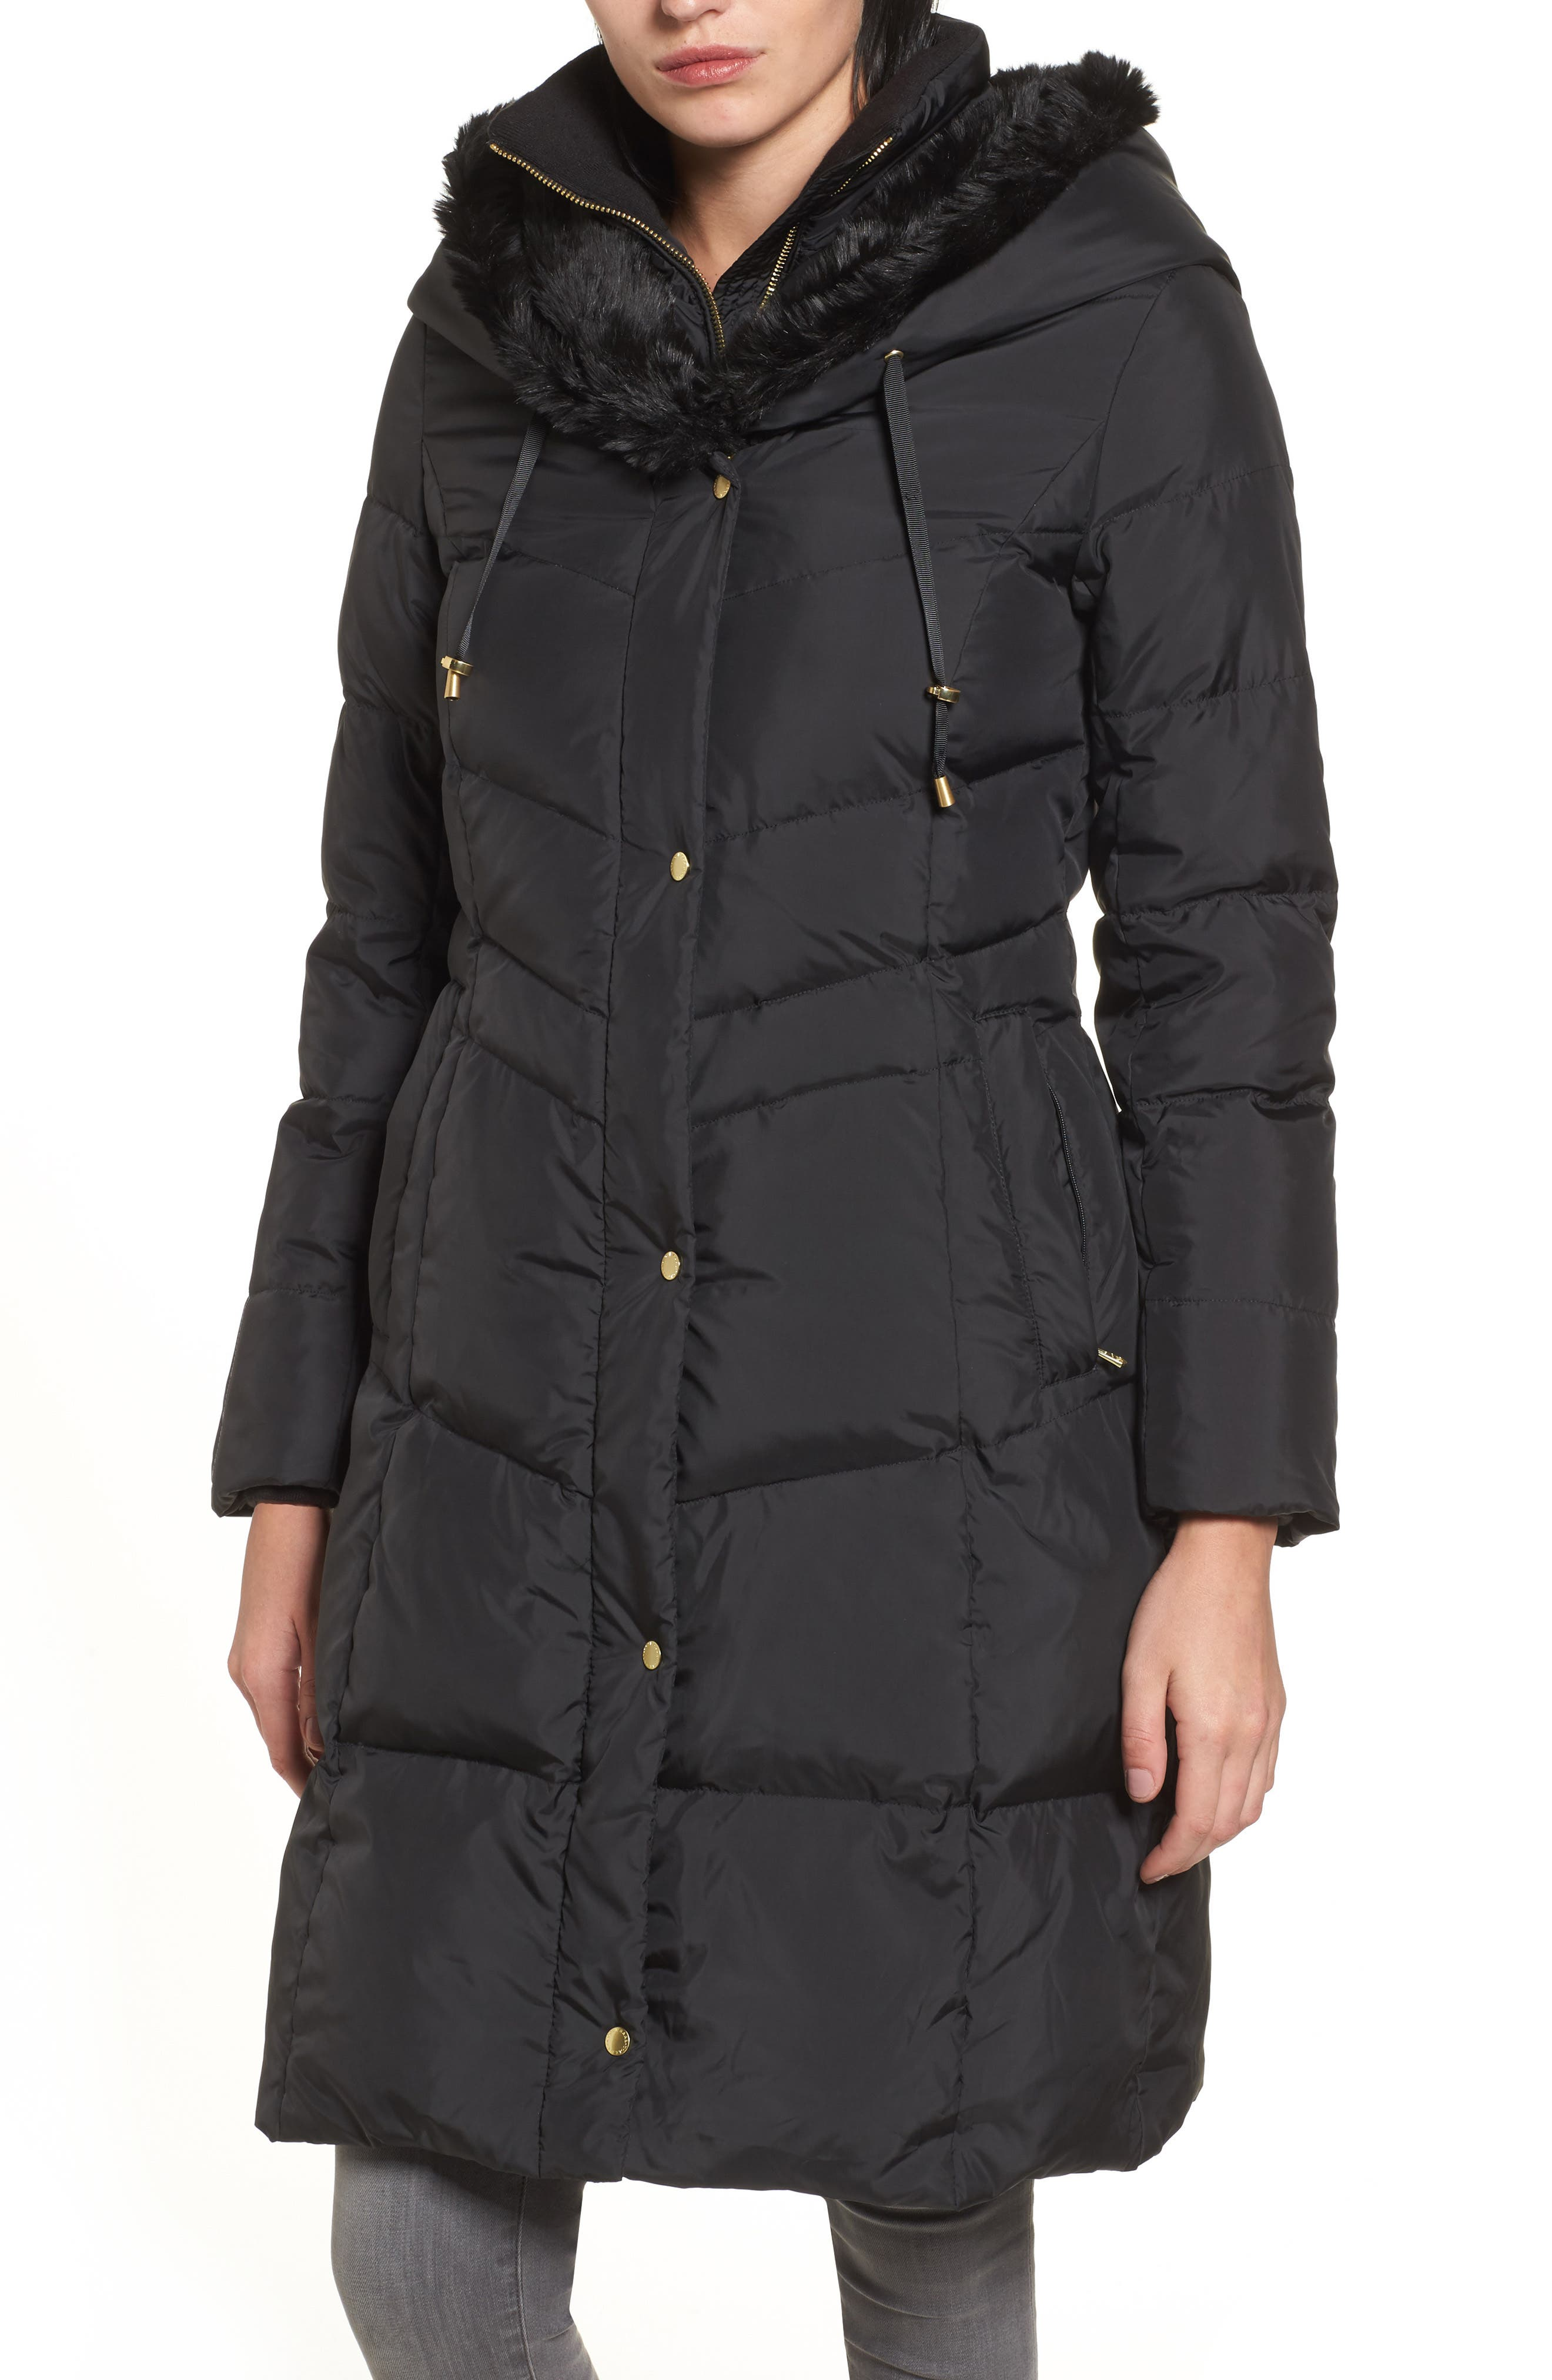 3/4 Down Coat with Faux Fur Hood,                         Main,                         color, 001